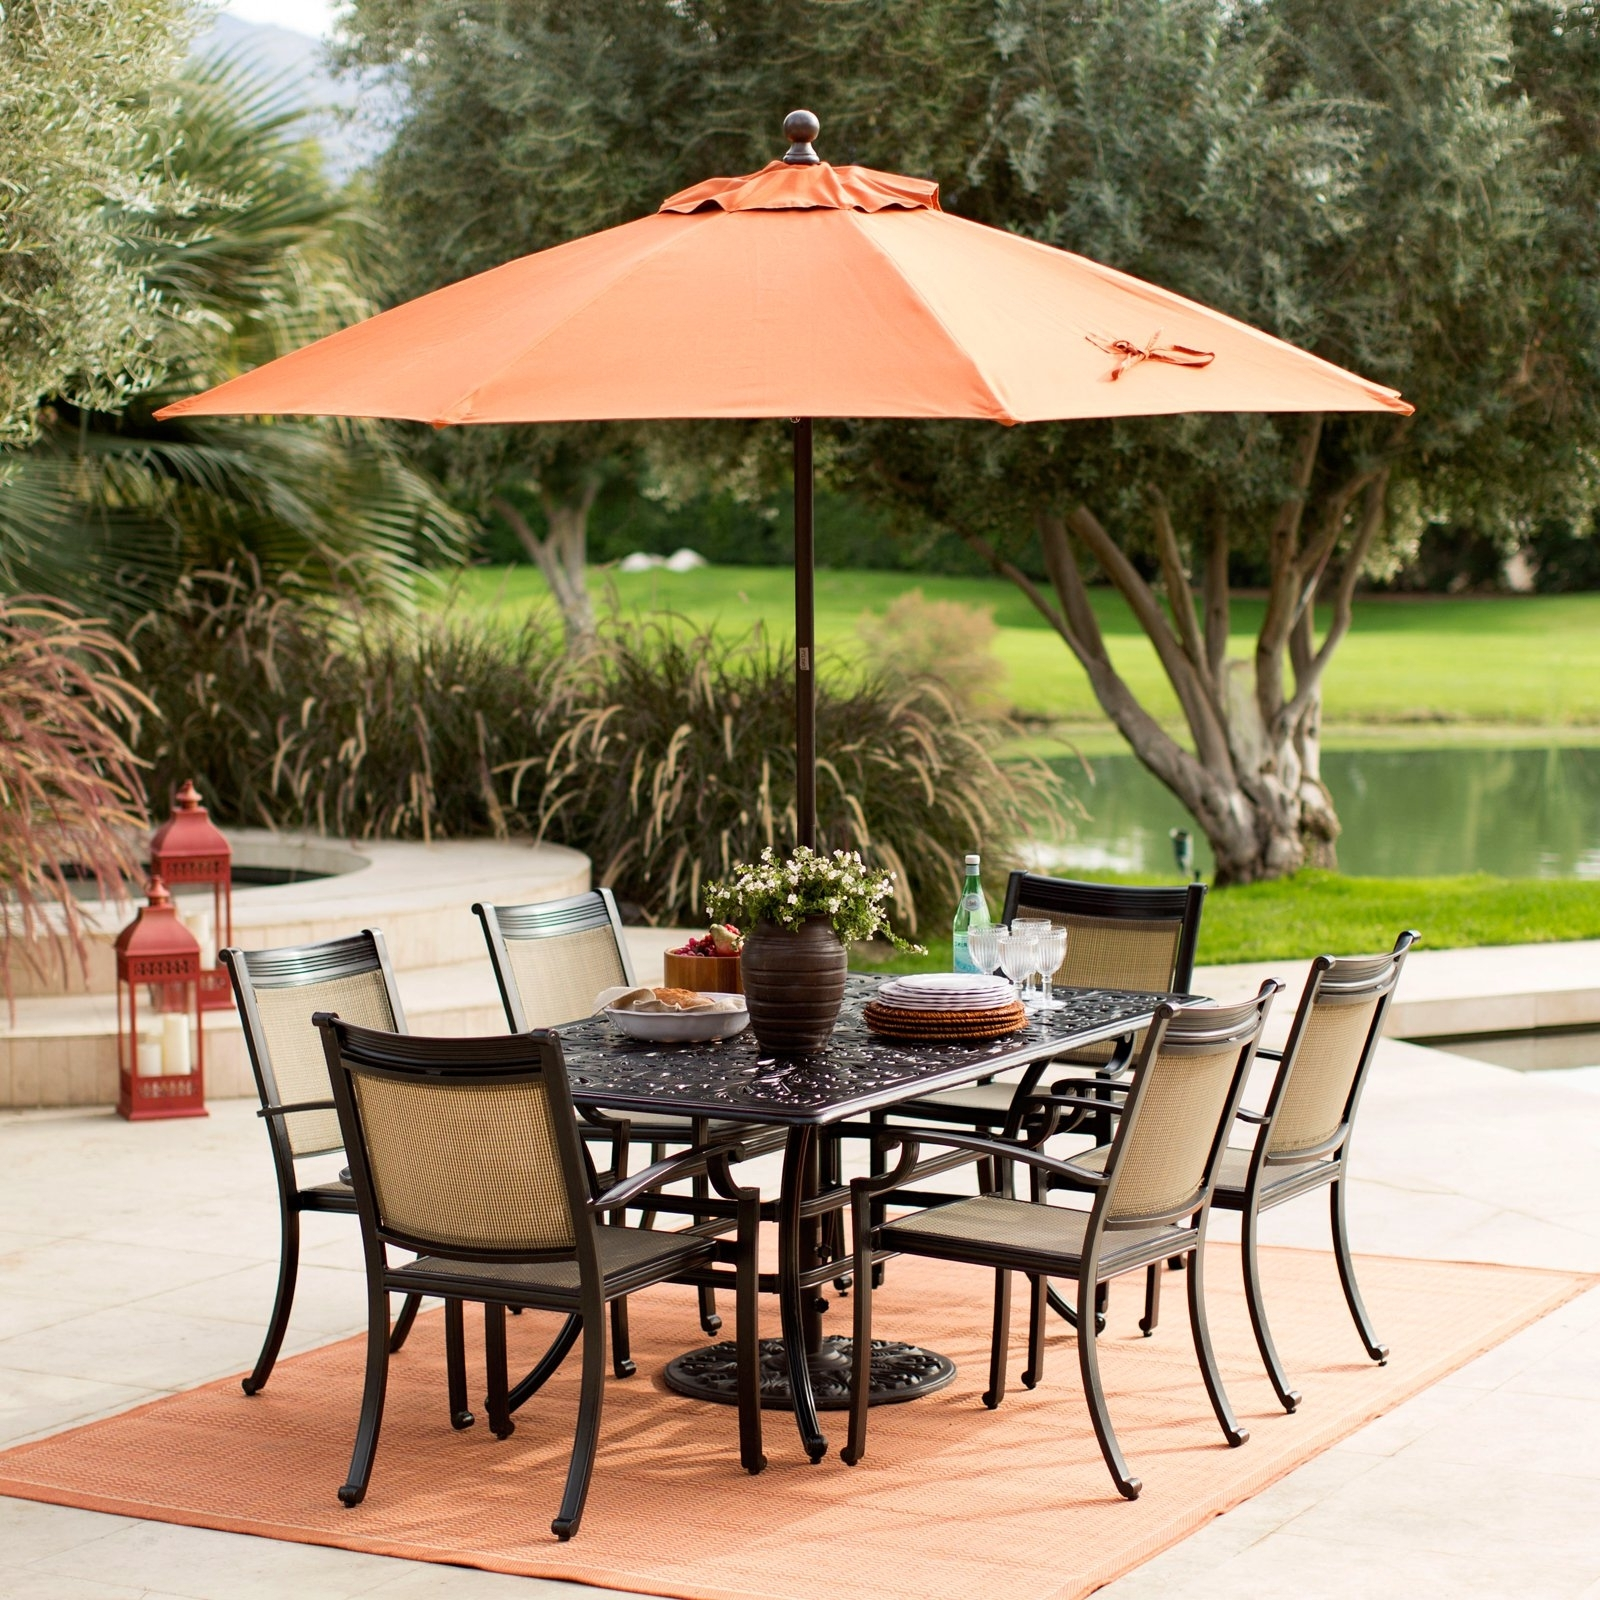 Best And Newest Coral Coast 9 Ft. Sunbrella Commercial Grade Aluminum Wind Resistant Intended For Sunbrella Patio Umbrellas (Gallery 2 of 20)